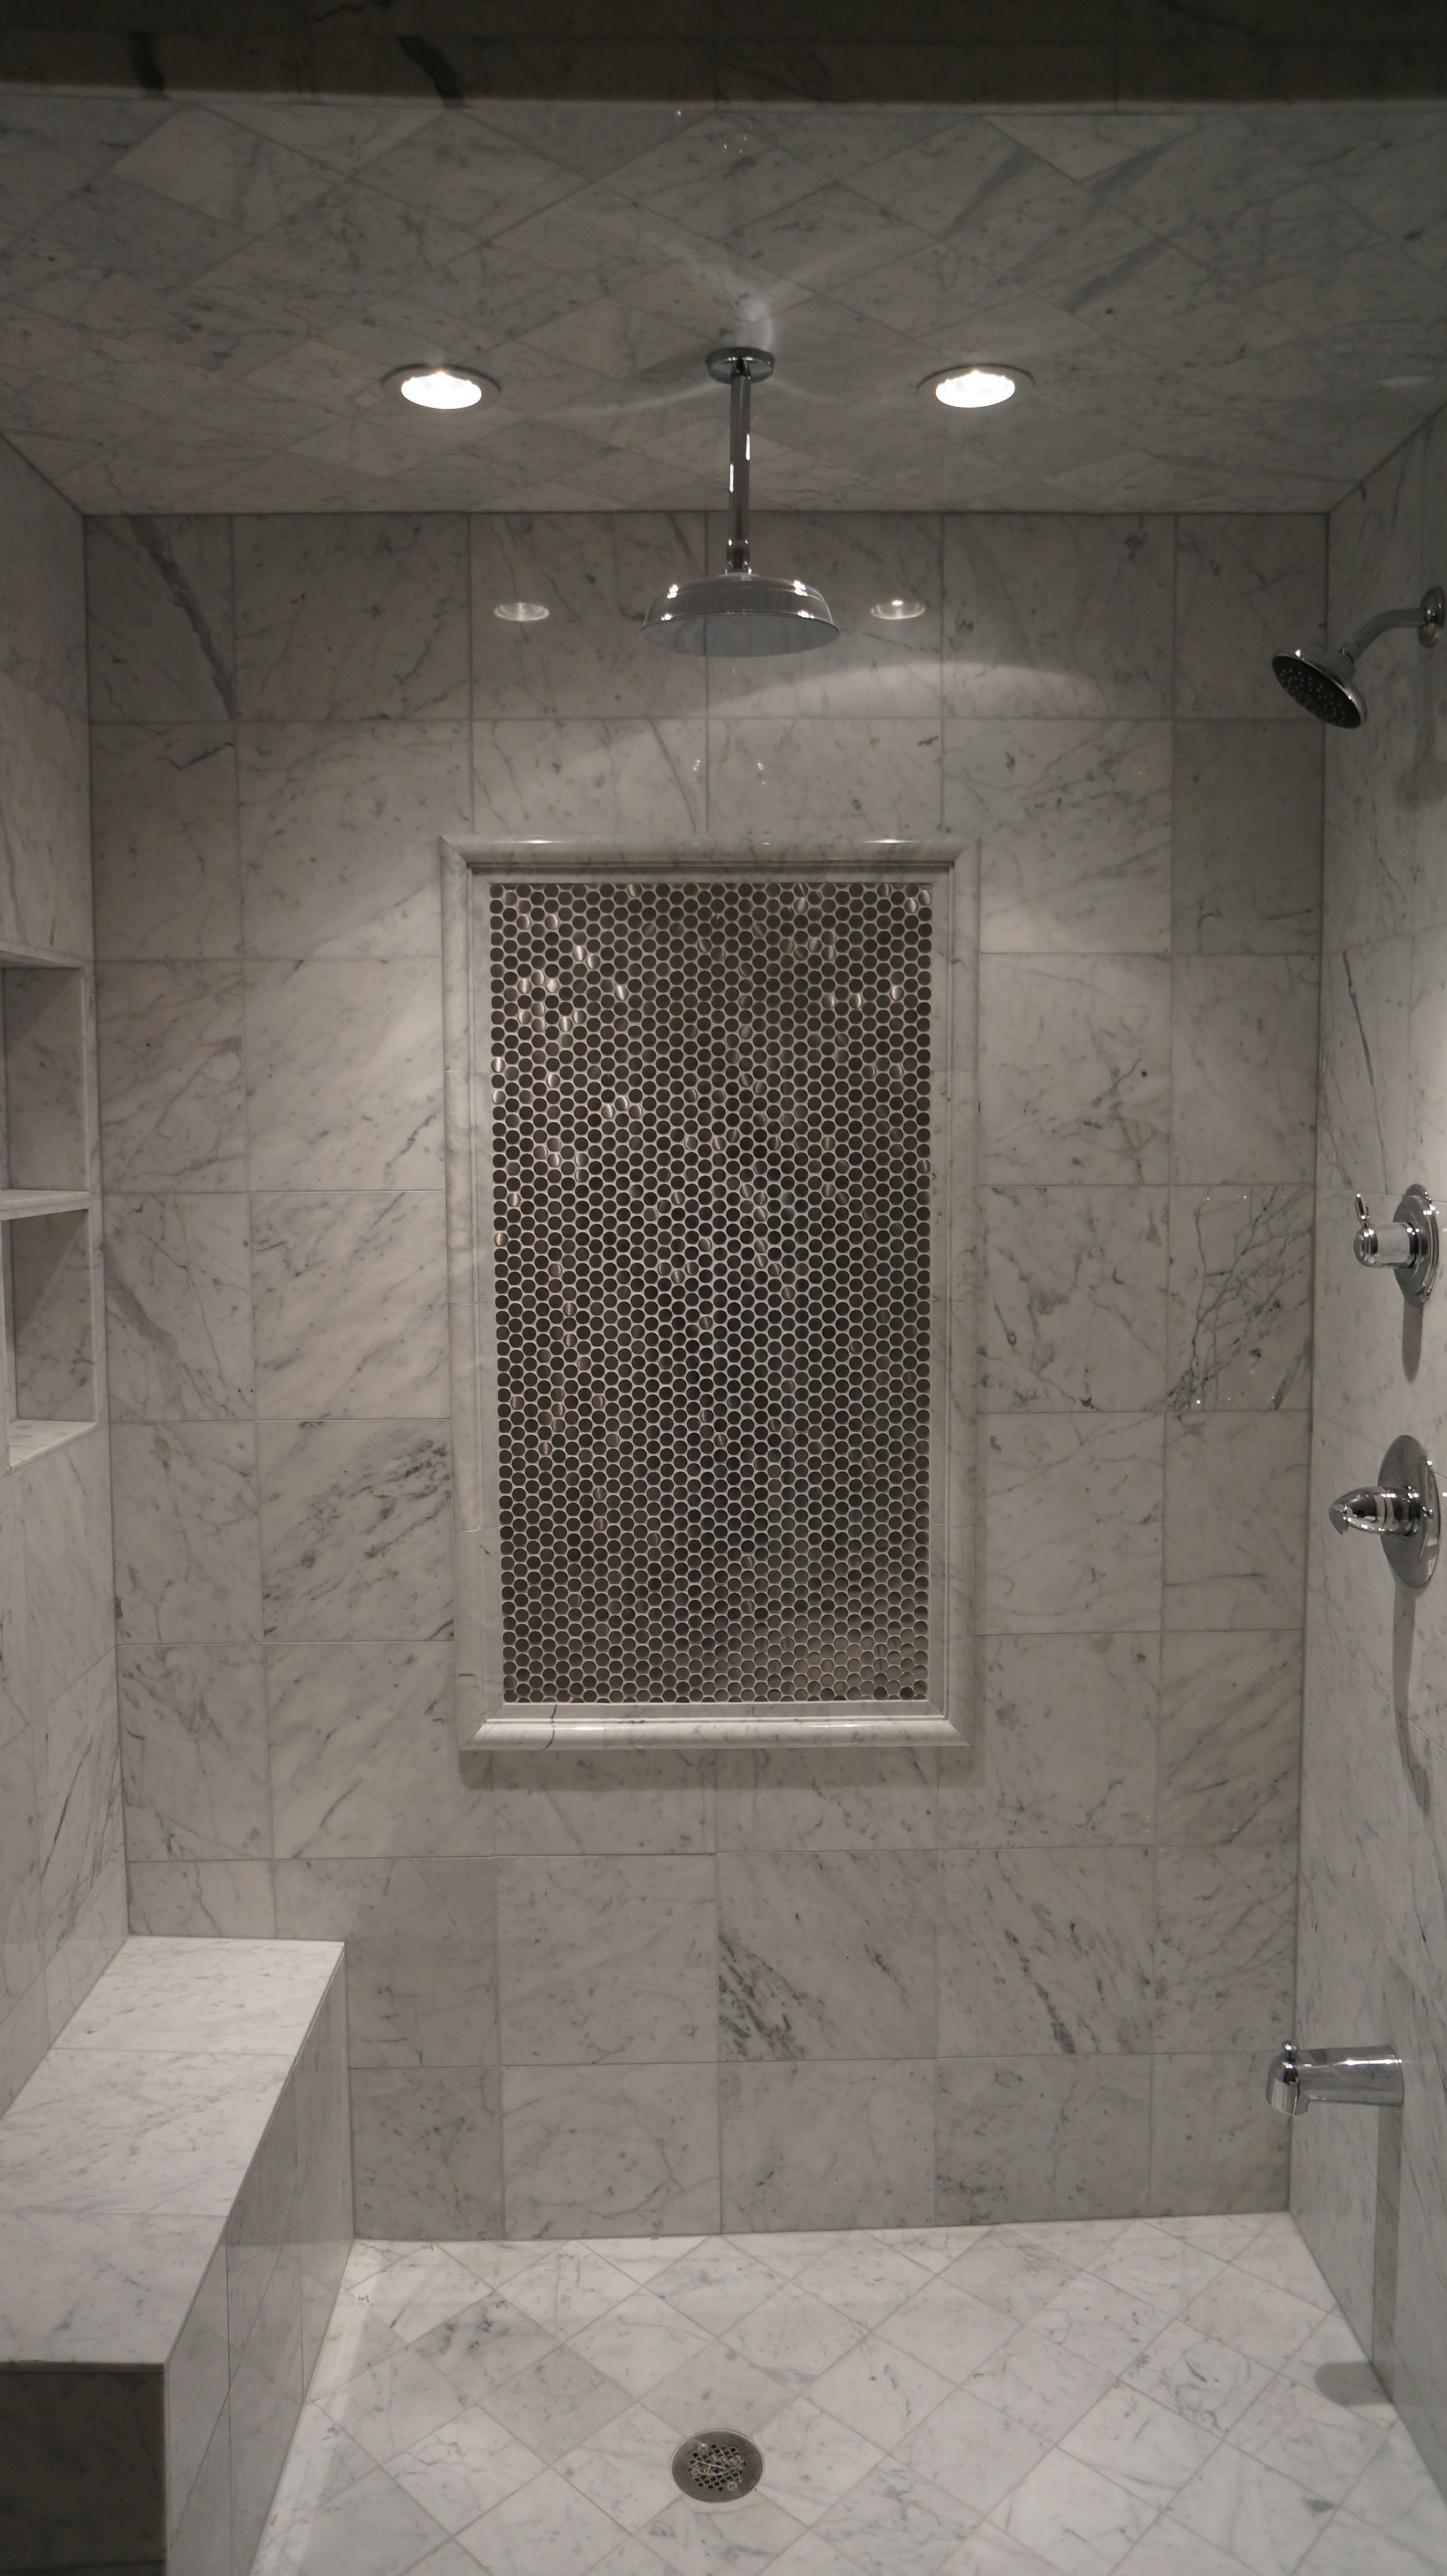 seeing bathtub pm should after converted bath island it the tub our and have both to a screen at of interior done conversion easy quality we works taking that into safe shot shower first agree work step sooner convert in